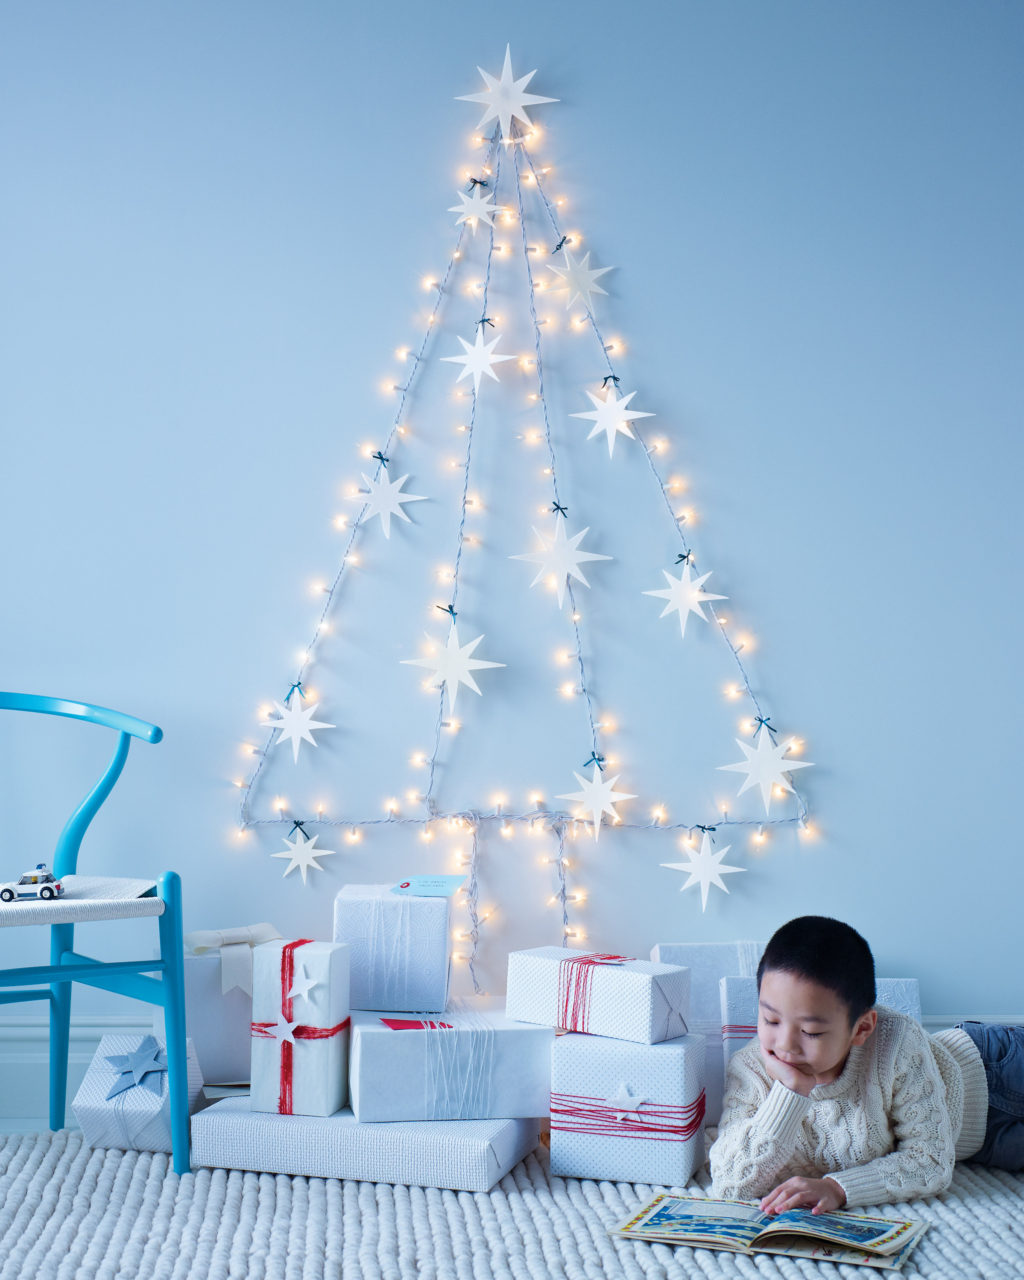 DIY-Christmas-Ornaments..-2-1024x1280 70+ Impressive Christmas Decorations to Do Yourself in 2021